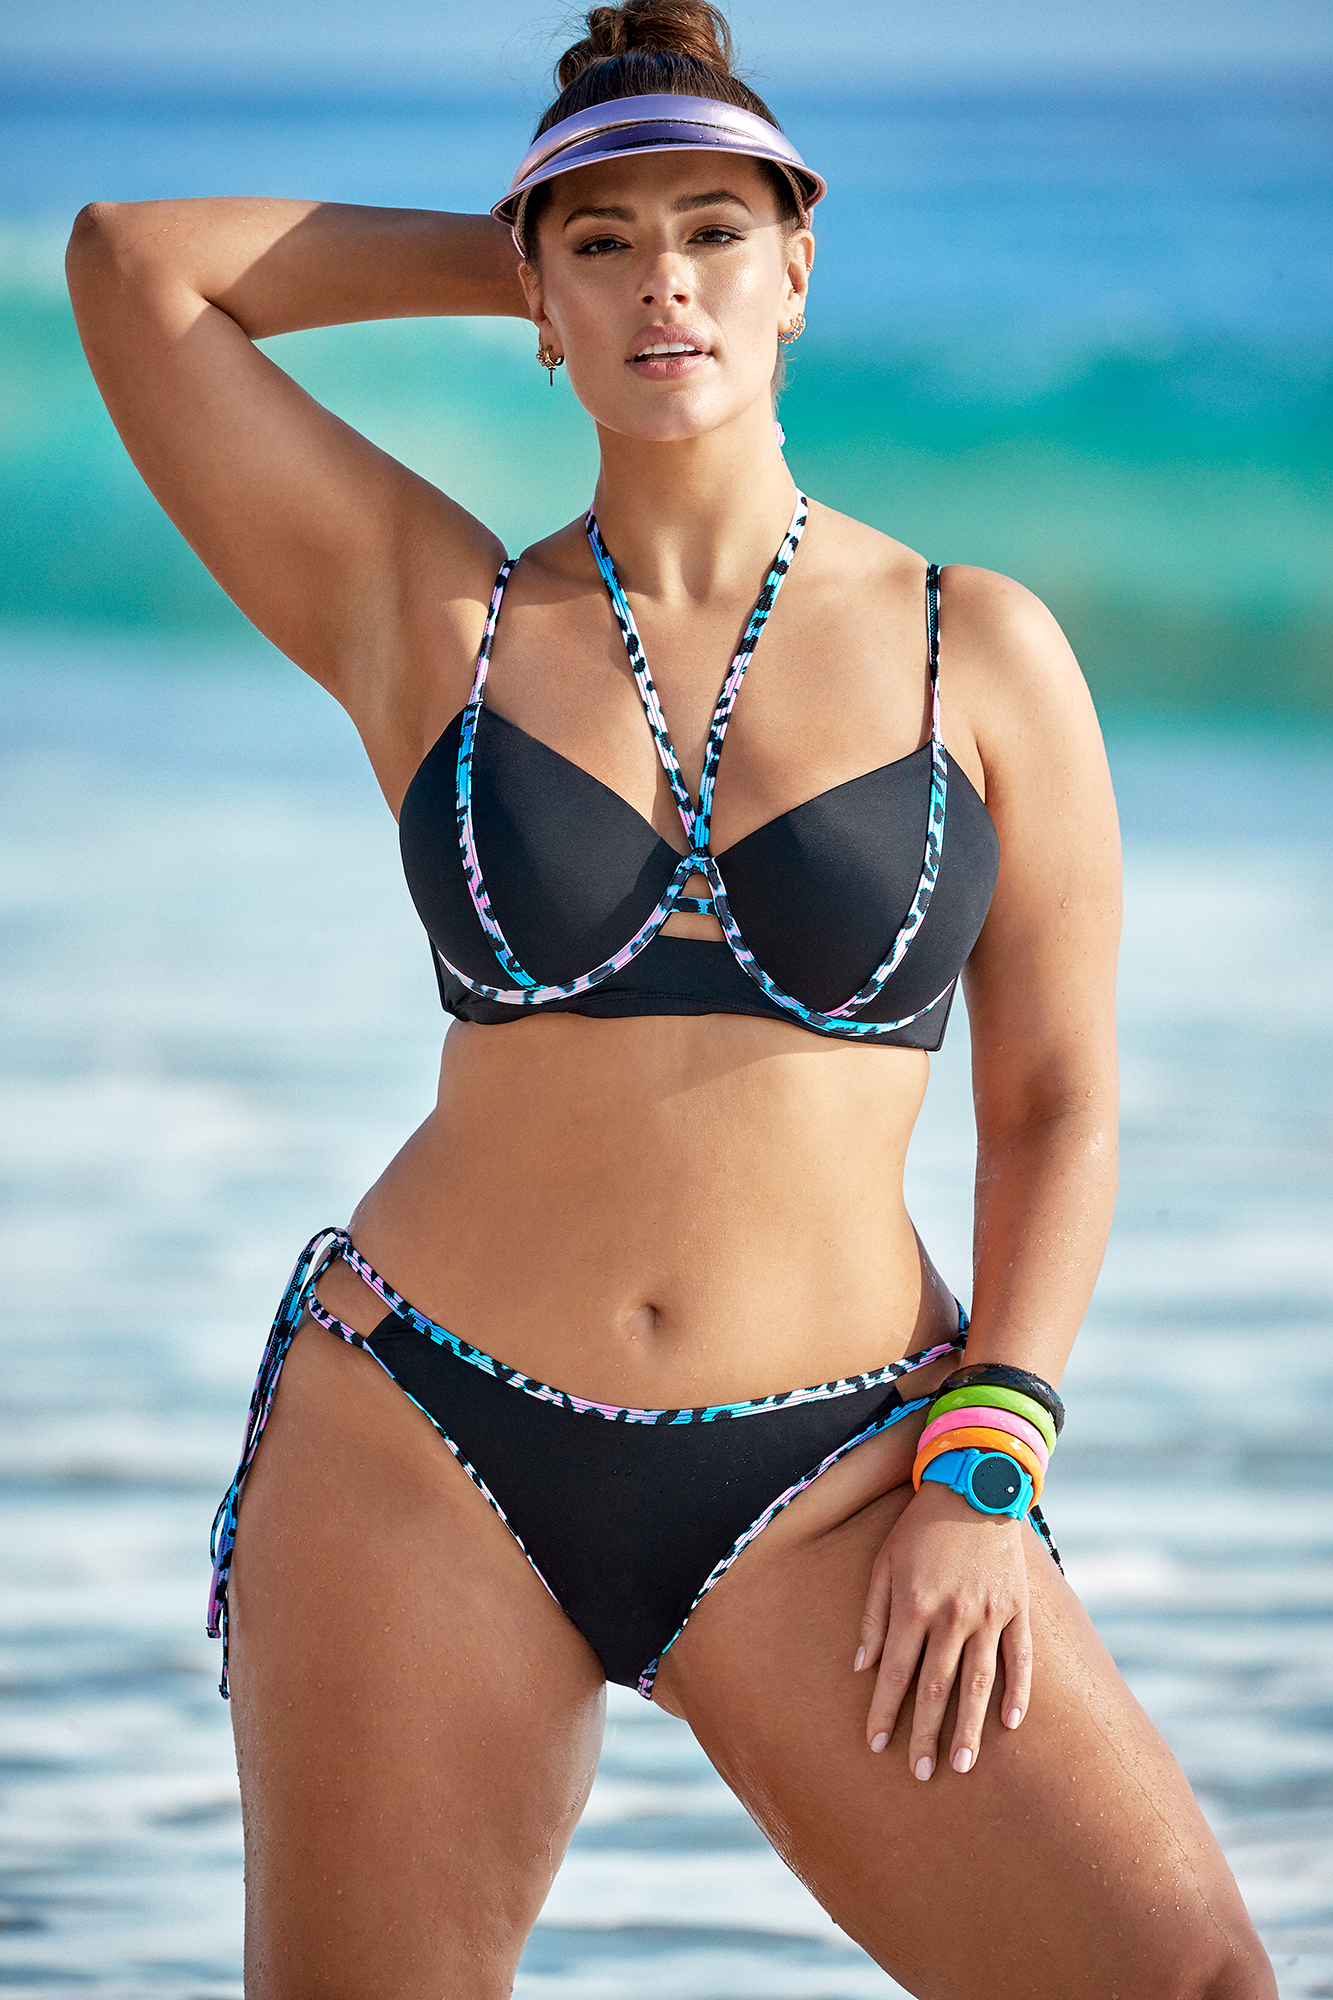 ab6d5b0e07f5b Ashley Graham x Swimsuits For All Resort 2019 Campaign: Pics